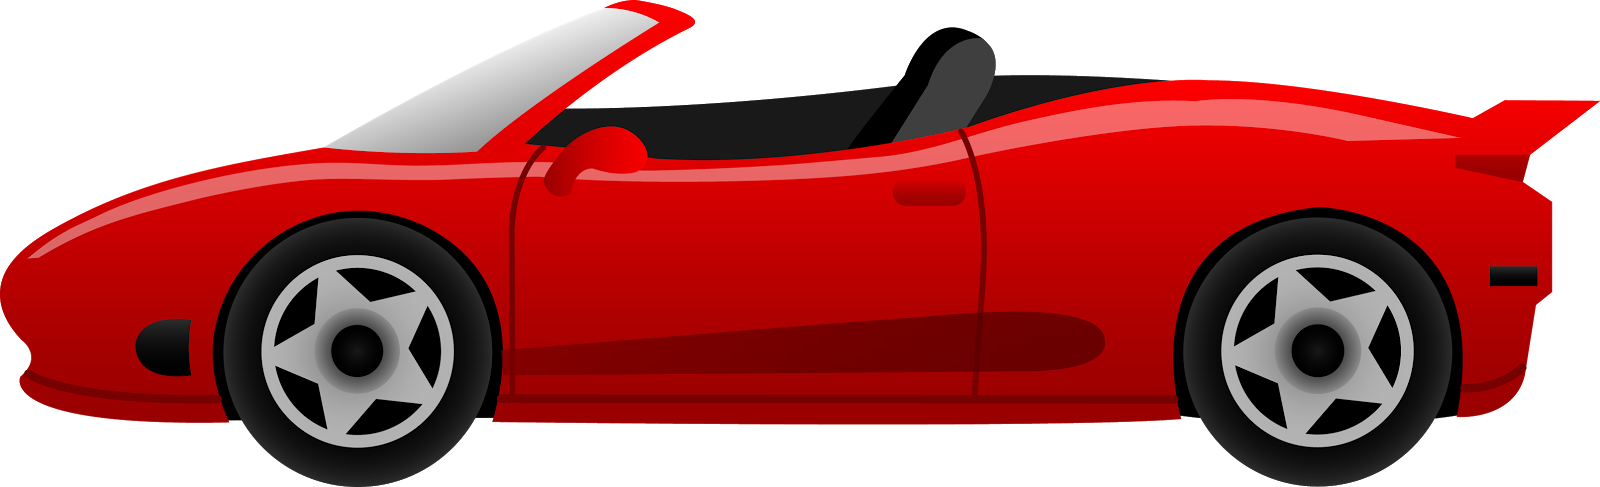 Red car clipart clear background. Red car clipart clear background. Cars